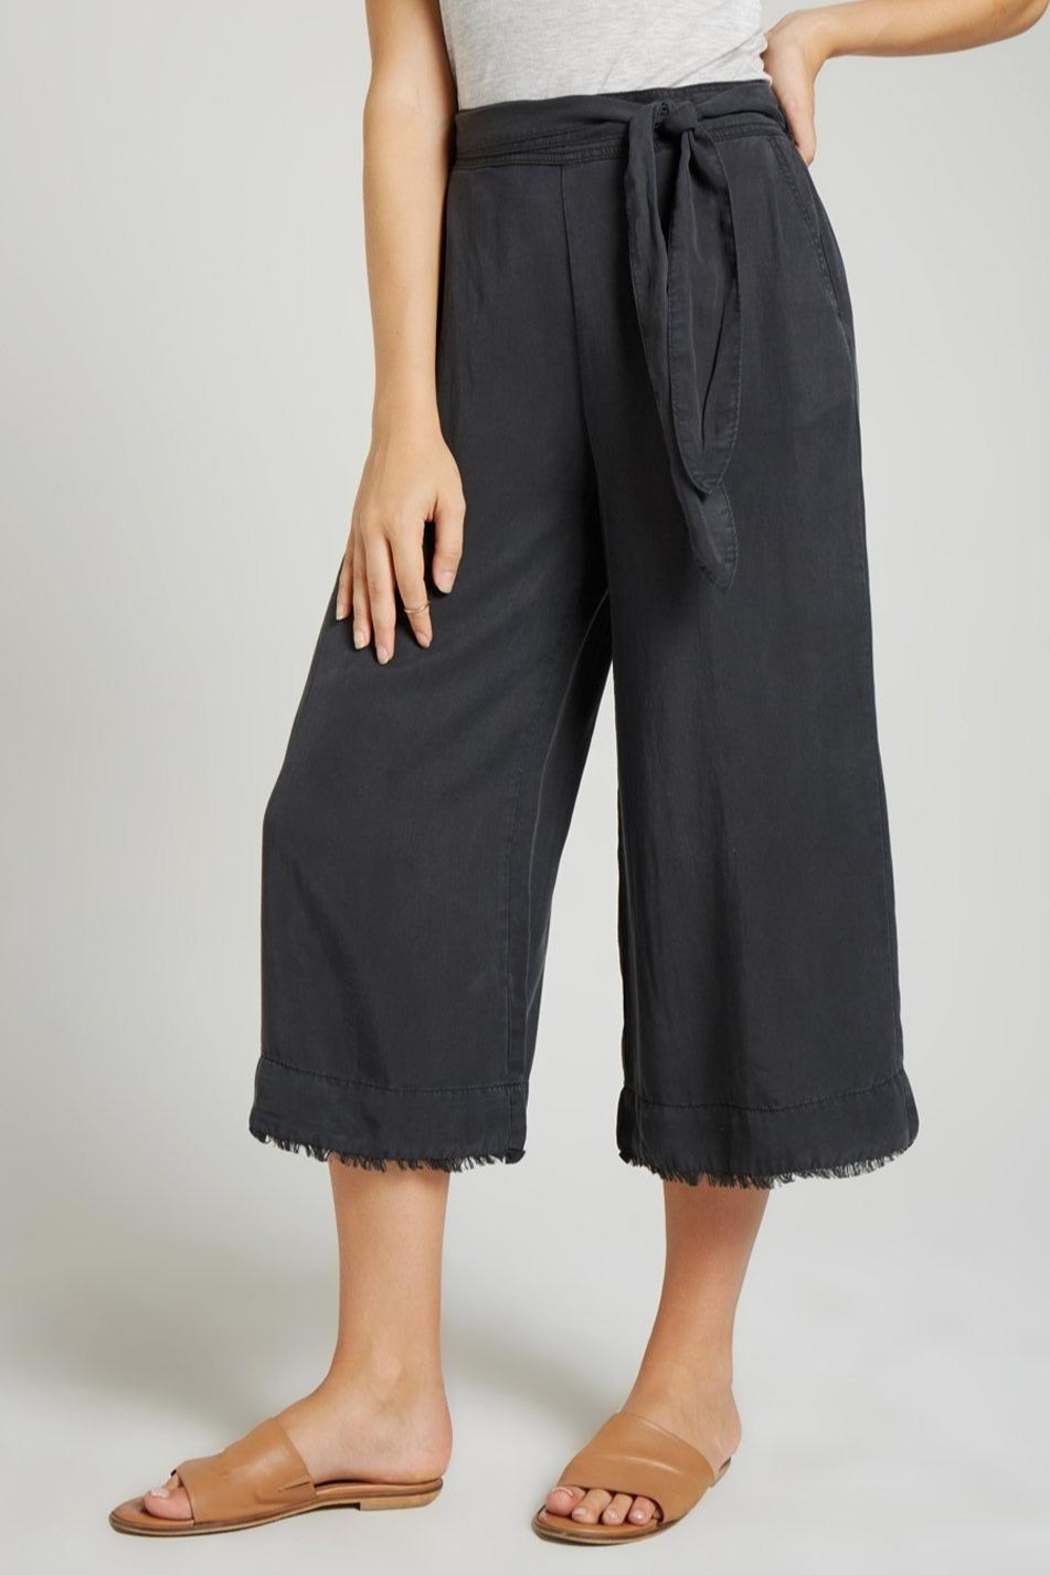 Bella Dahl Belted Crop Pant - Main Image